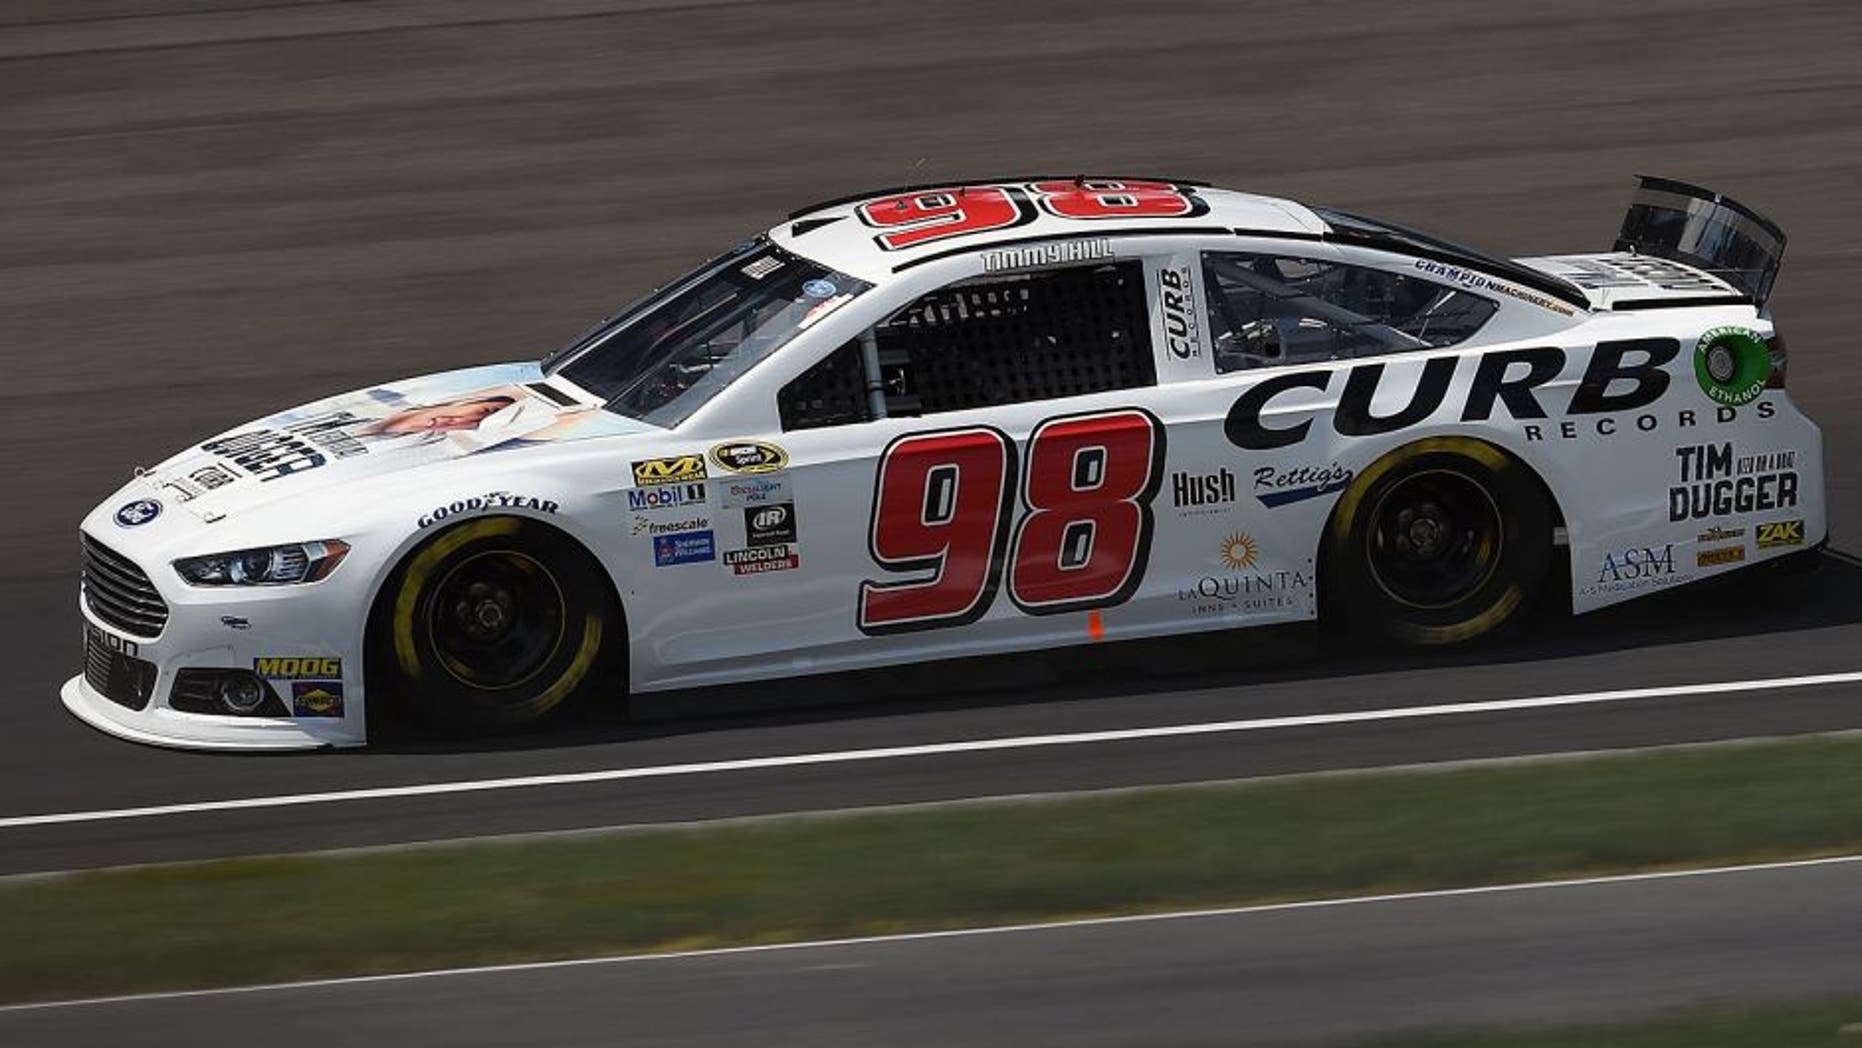 INDIANAPOLIS, IN - JULY 24: Timmy Hill, driver of the #98 Curb Records Ford, practices for the NASCAR Sprint Cup Series Crown Royal Presents the Jeff Kyle 400 at the Brickyard at Indianapolis Motorspeedway on July 24, 2015 in Indianapolis, Indiana. (Photo by Rainier Ehrhardt/NASCAR via Getty Images)